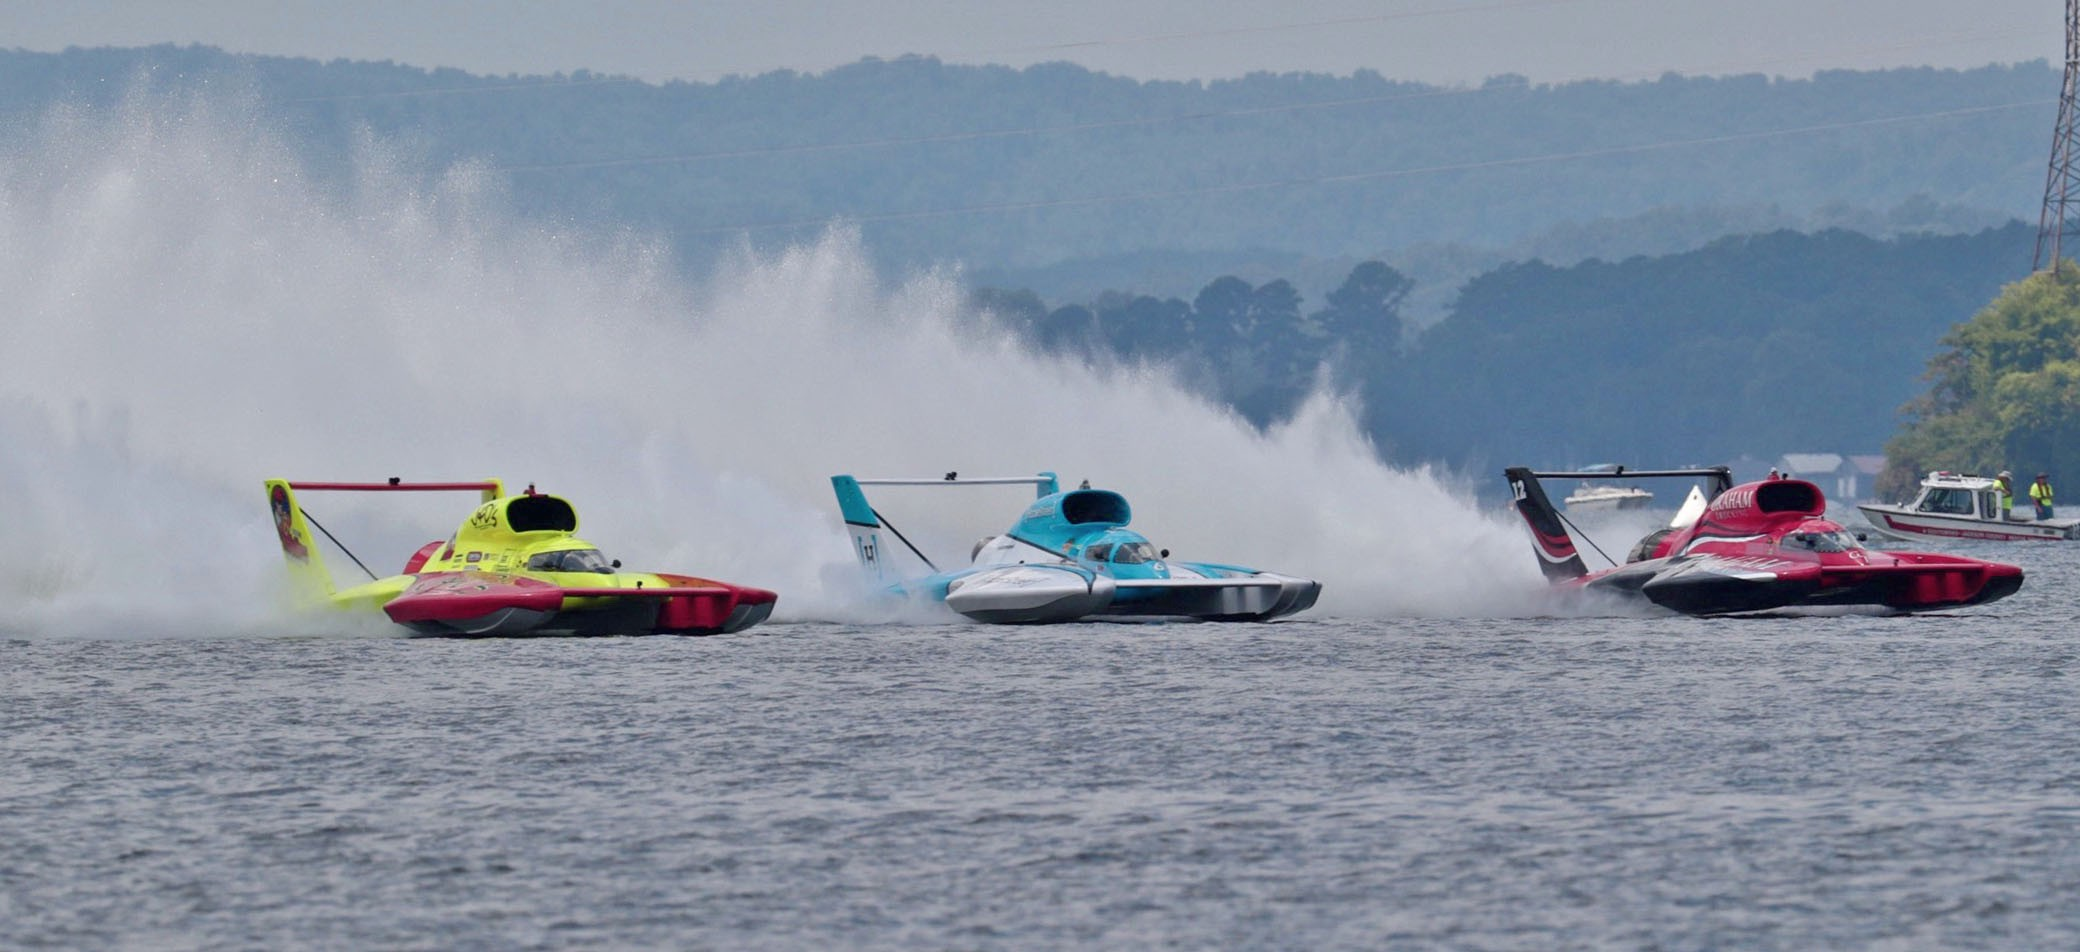 Jimmy Shane Eclipses course record in qualifying, wins preliminary